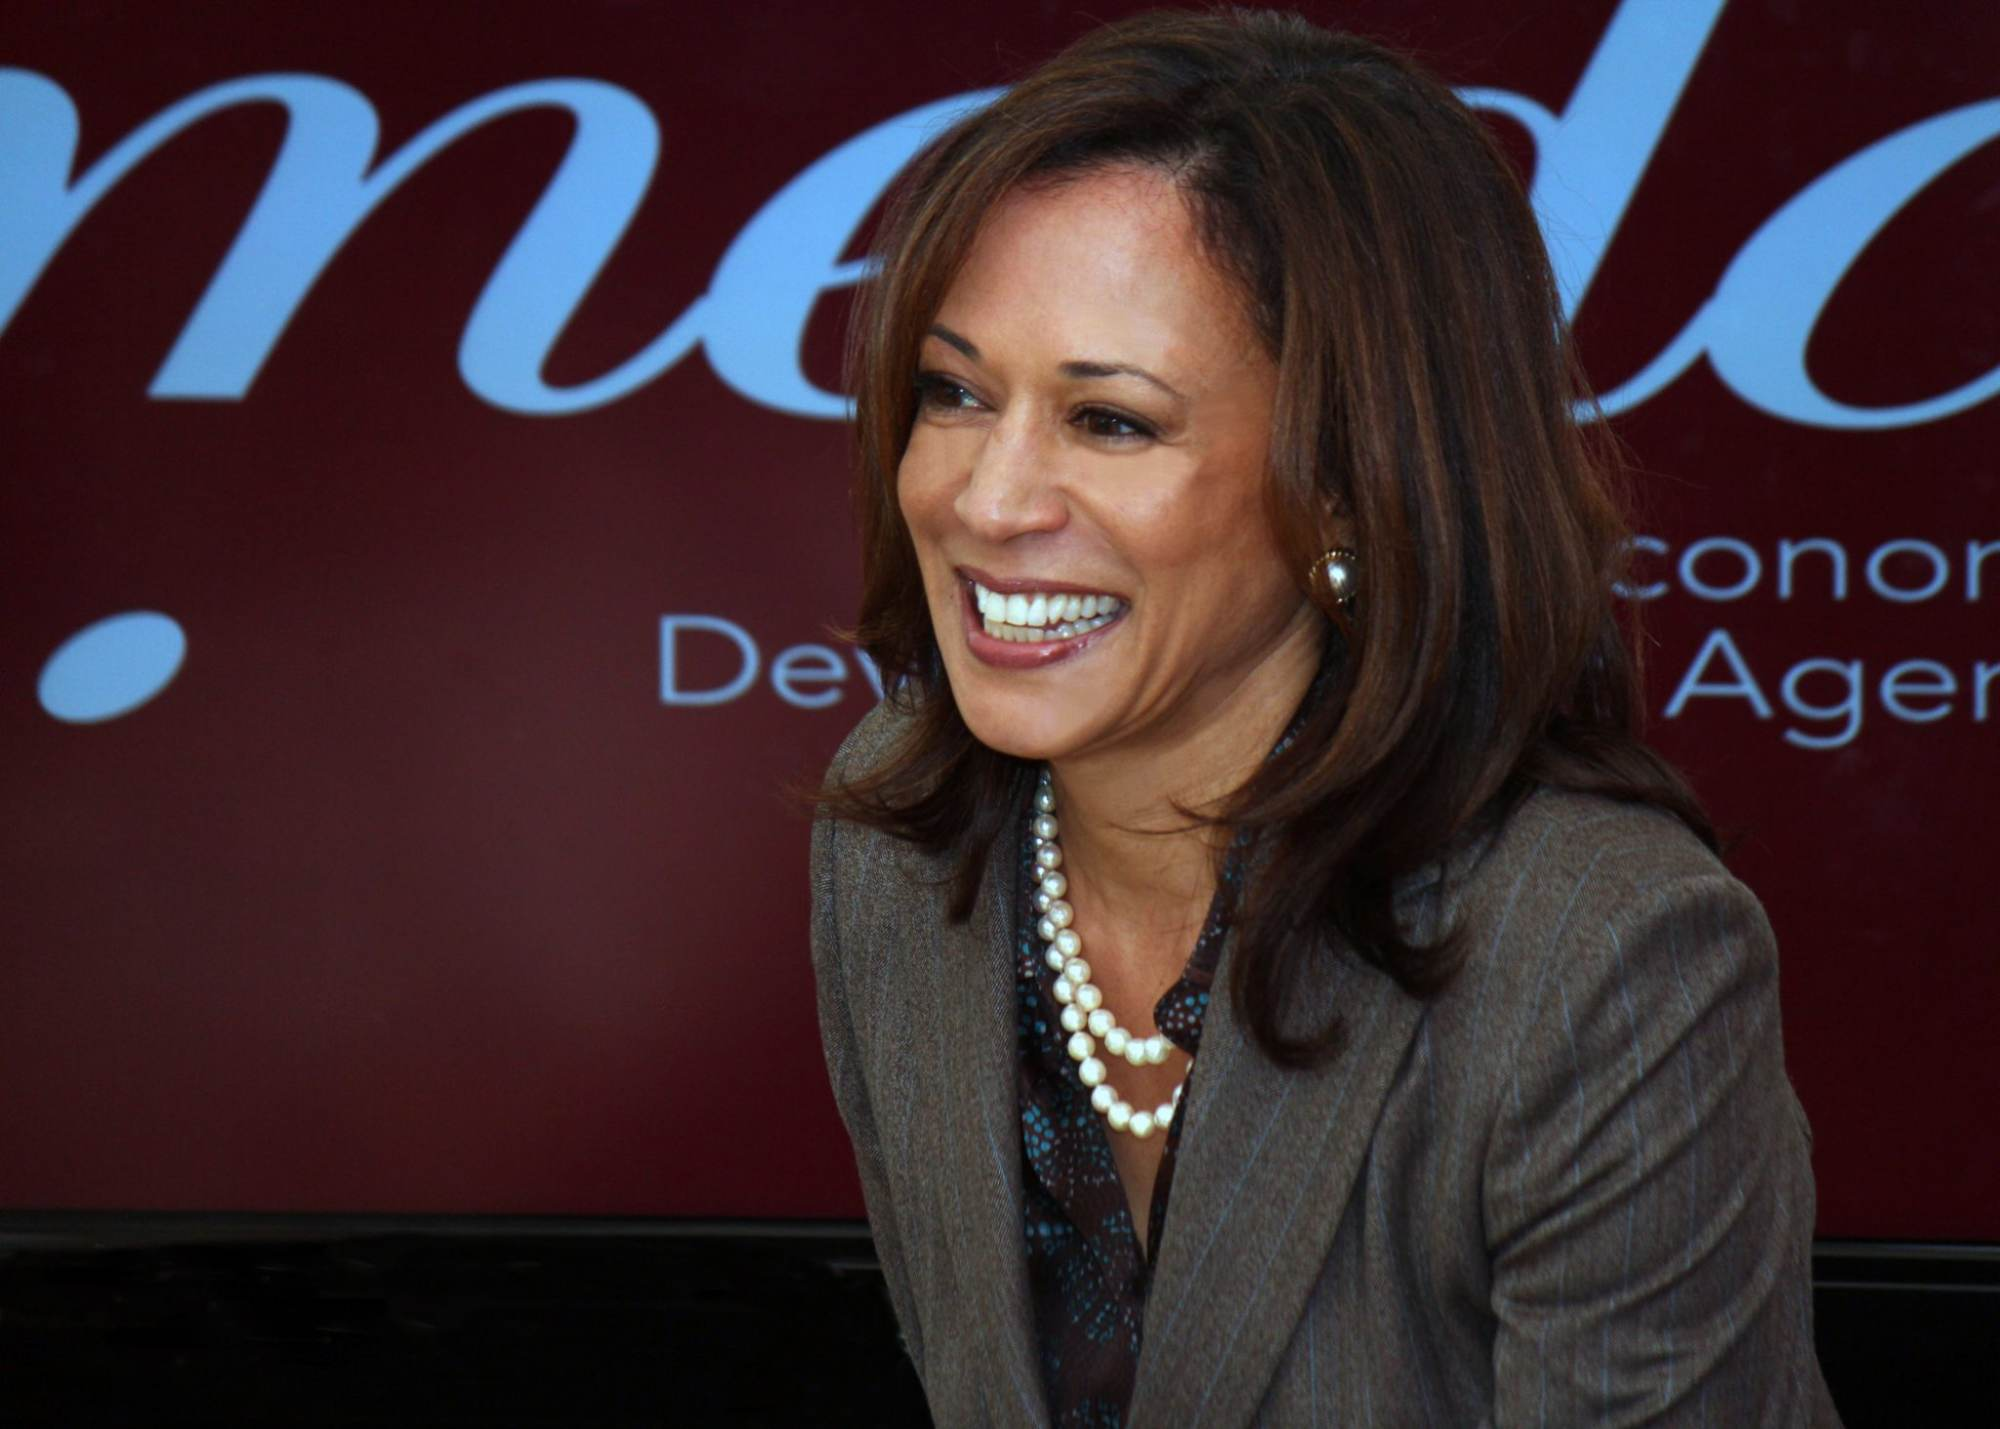 Kamala Harris: 'I'm Going to Win, And I Fully Intend to Win'